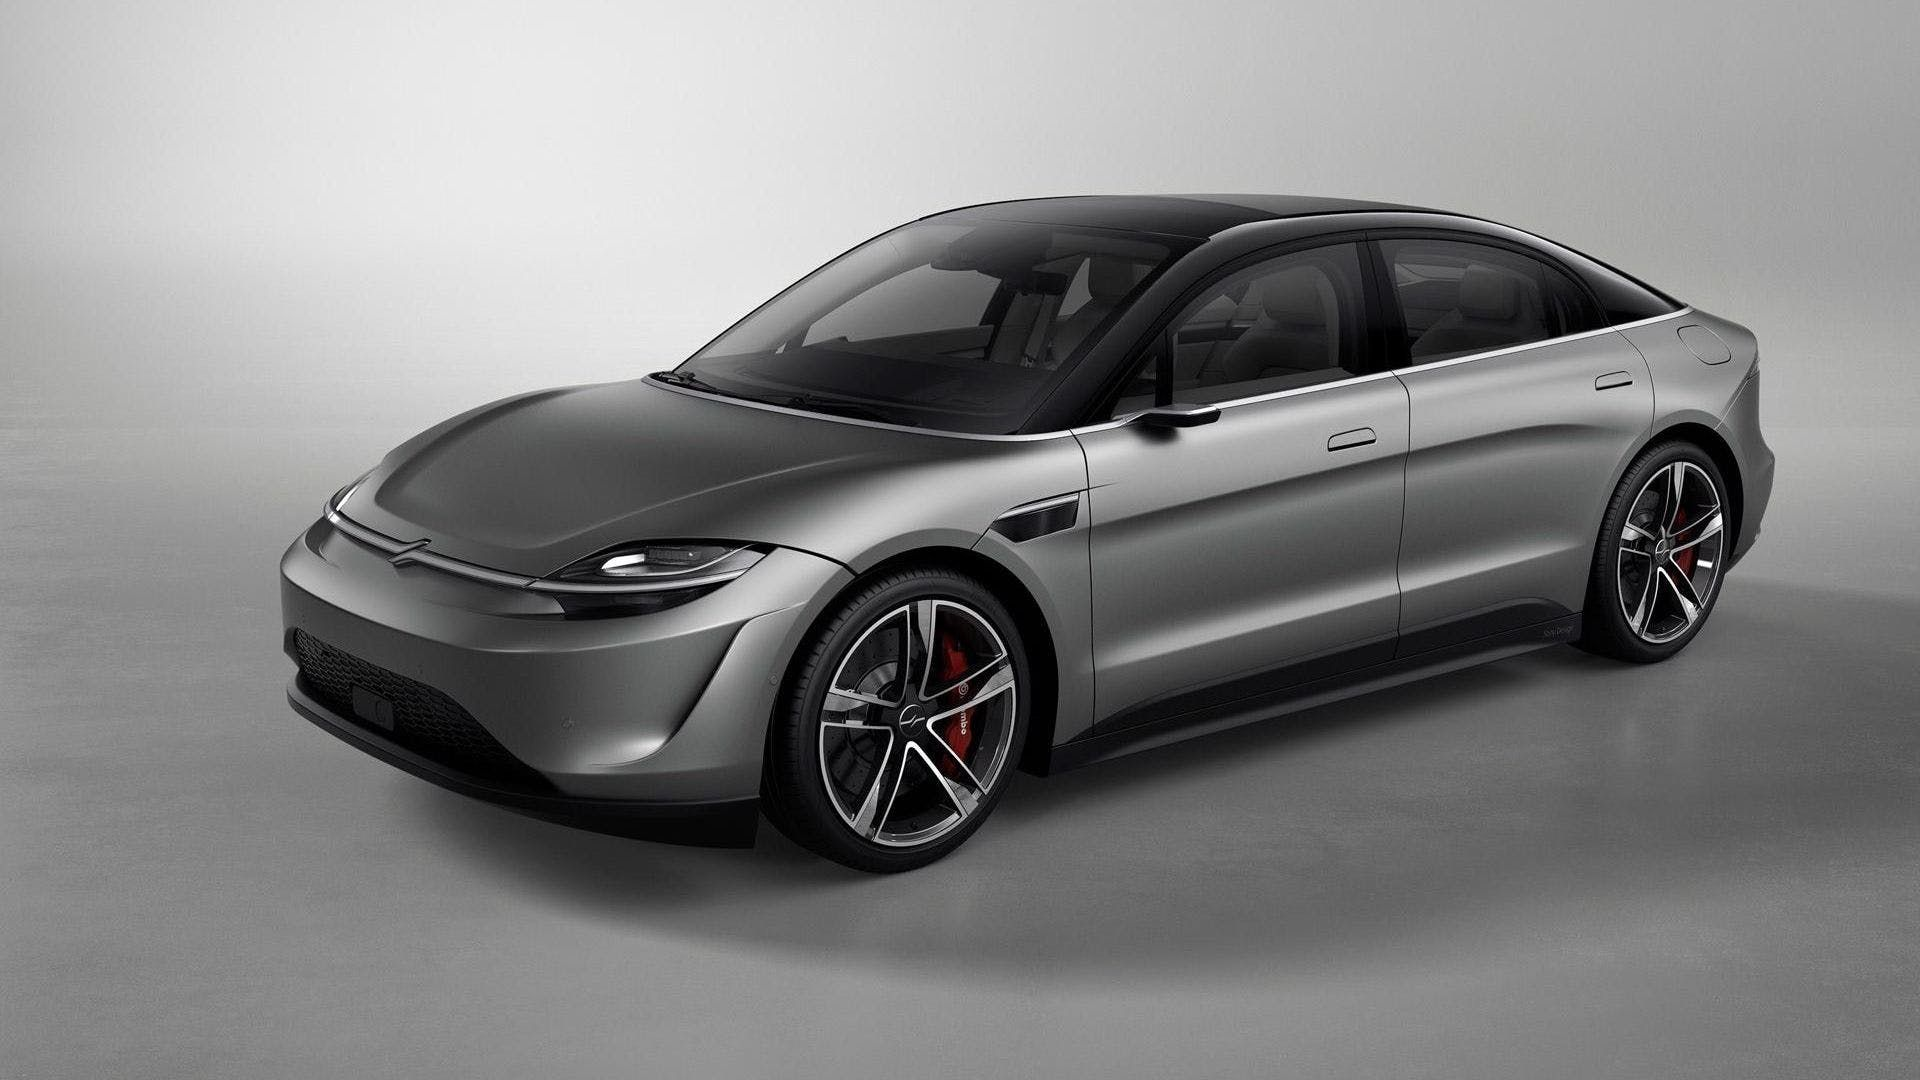 No Sony Won T Be Building And Selling Its Electric Car The Drive Electric Car Concept Concept Cars Future Car